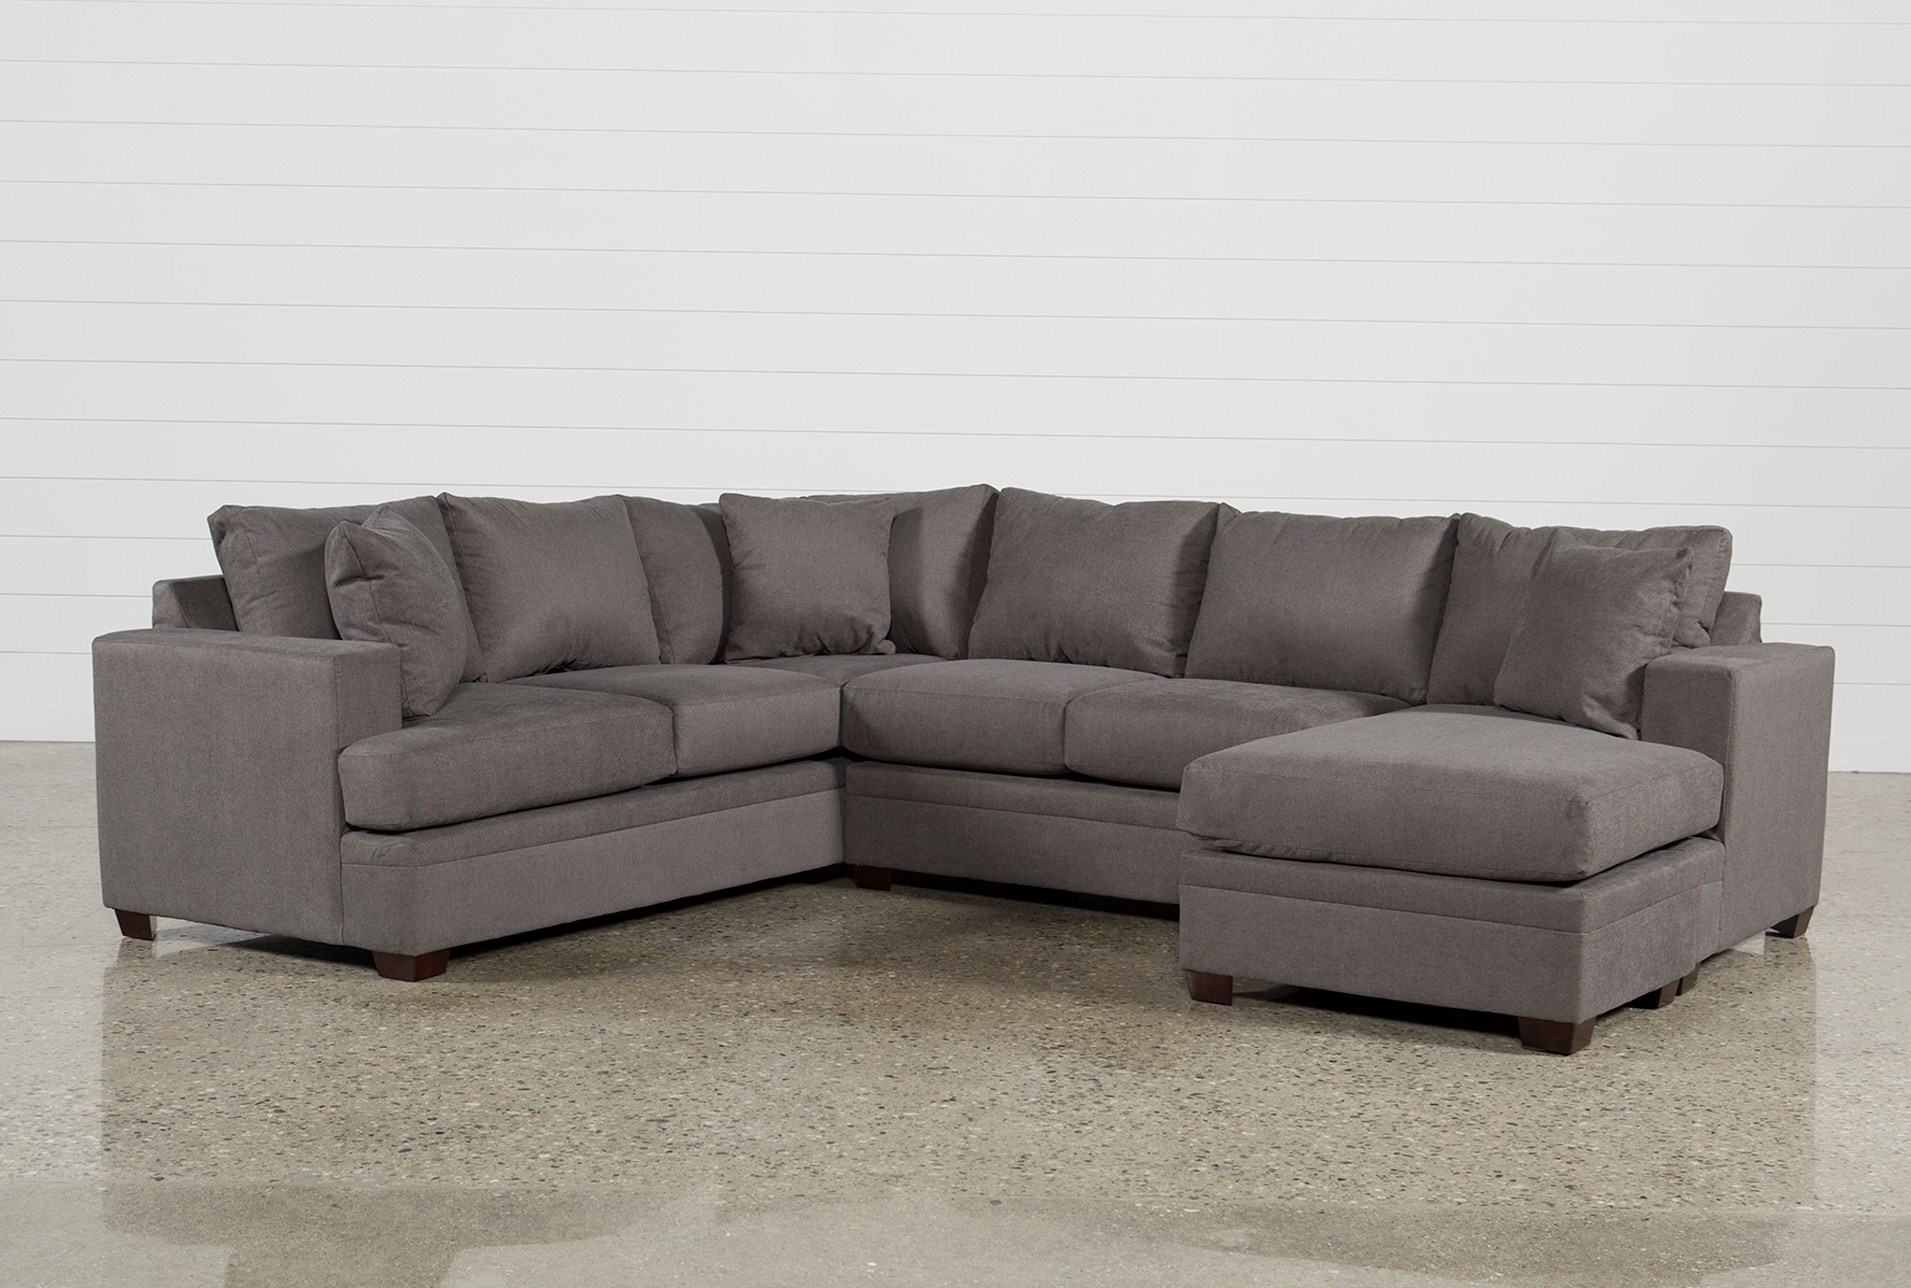 Awesome Kerri Charcoal 2 Piece Sectional With Right Arm Facing Chaise Alphanode Cool Chair Designs And Ideas Alphanodeonline